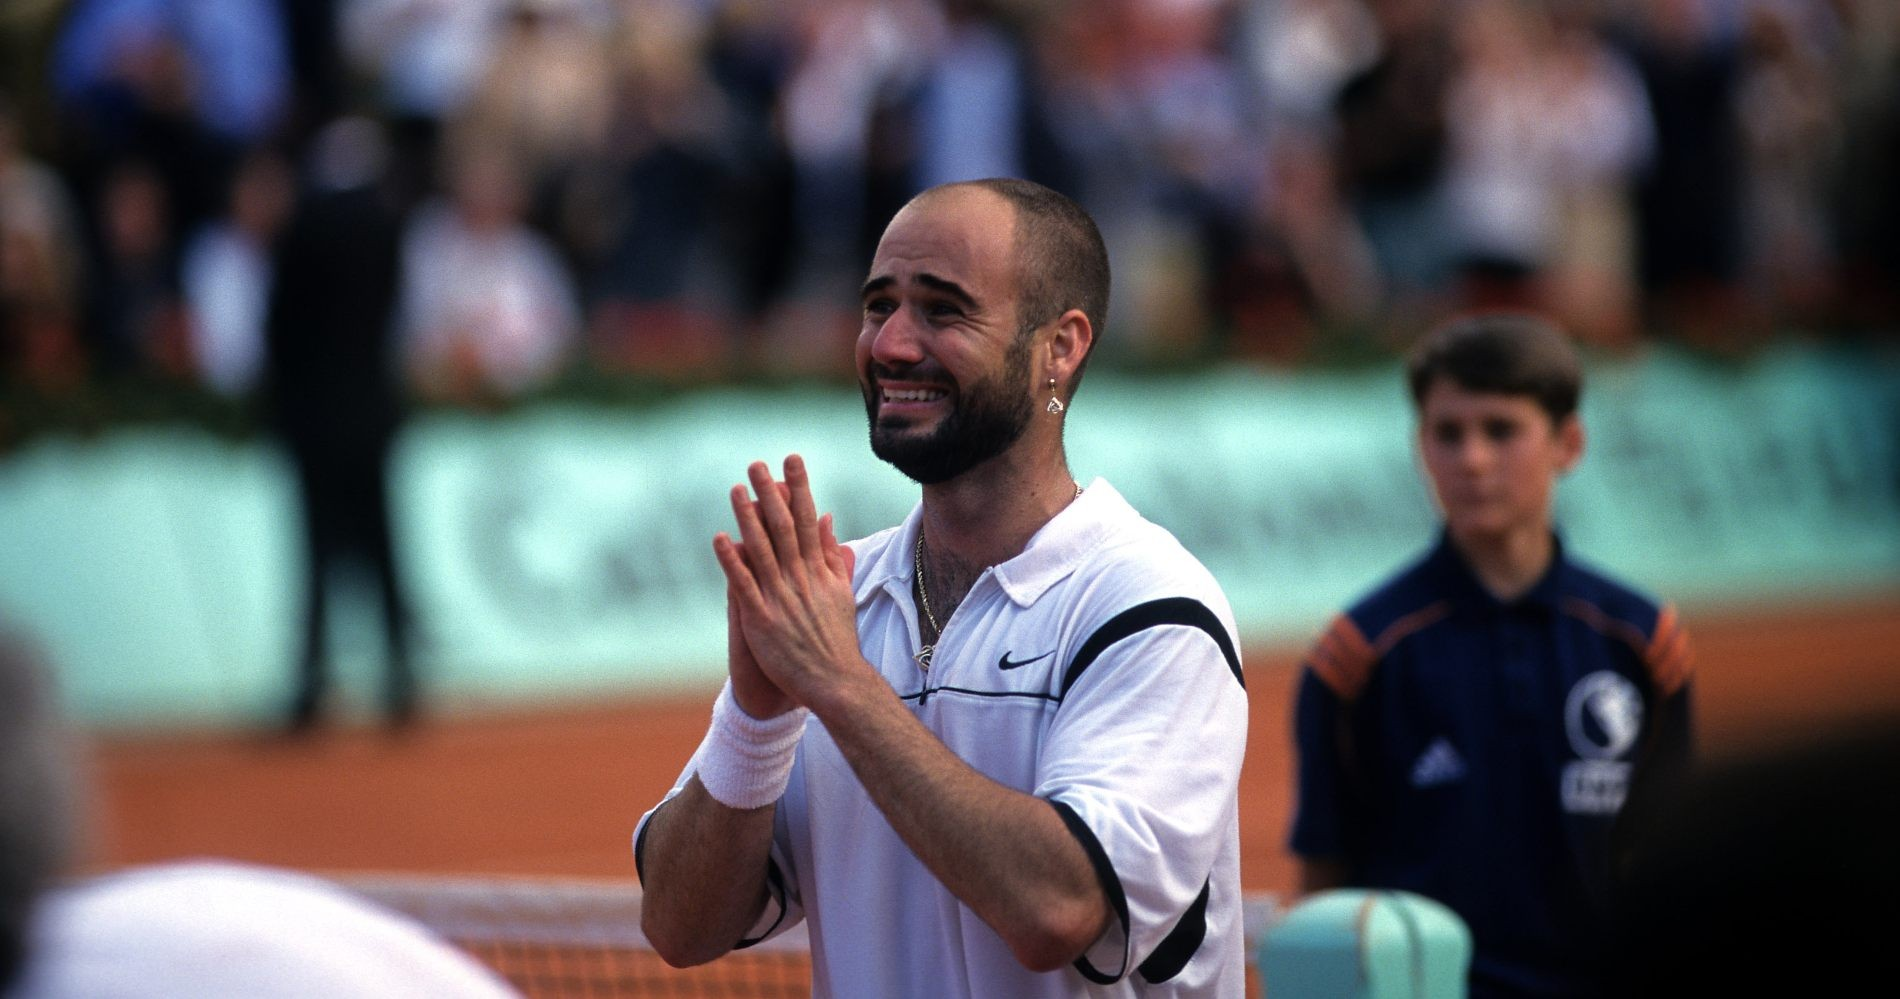 André Agassi won the 1999 French Open